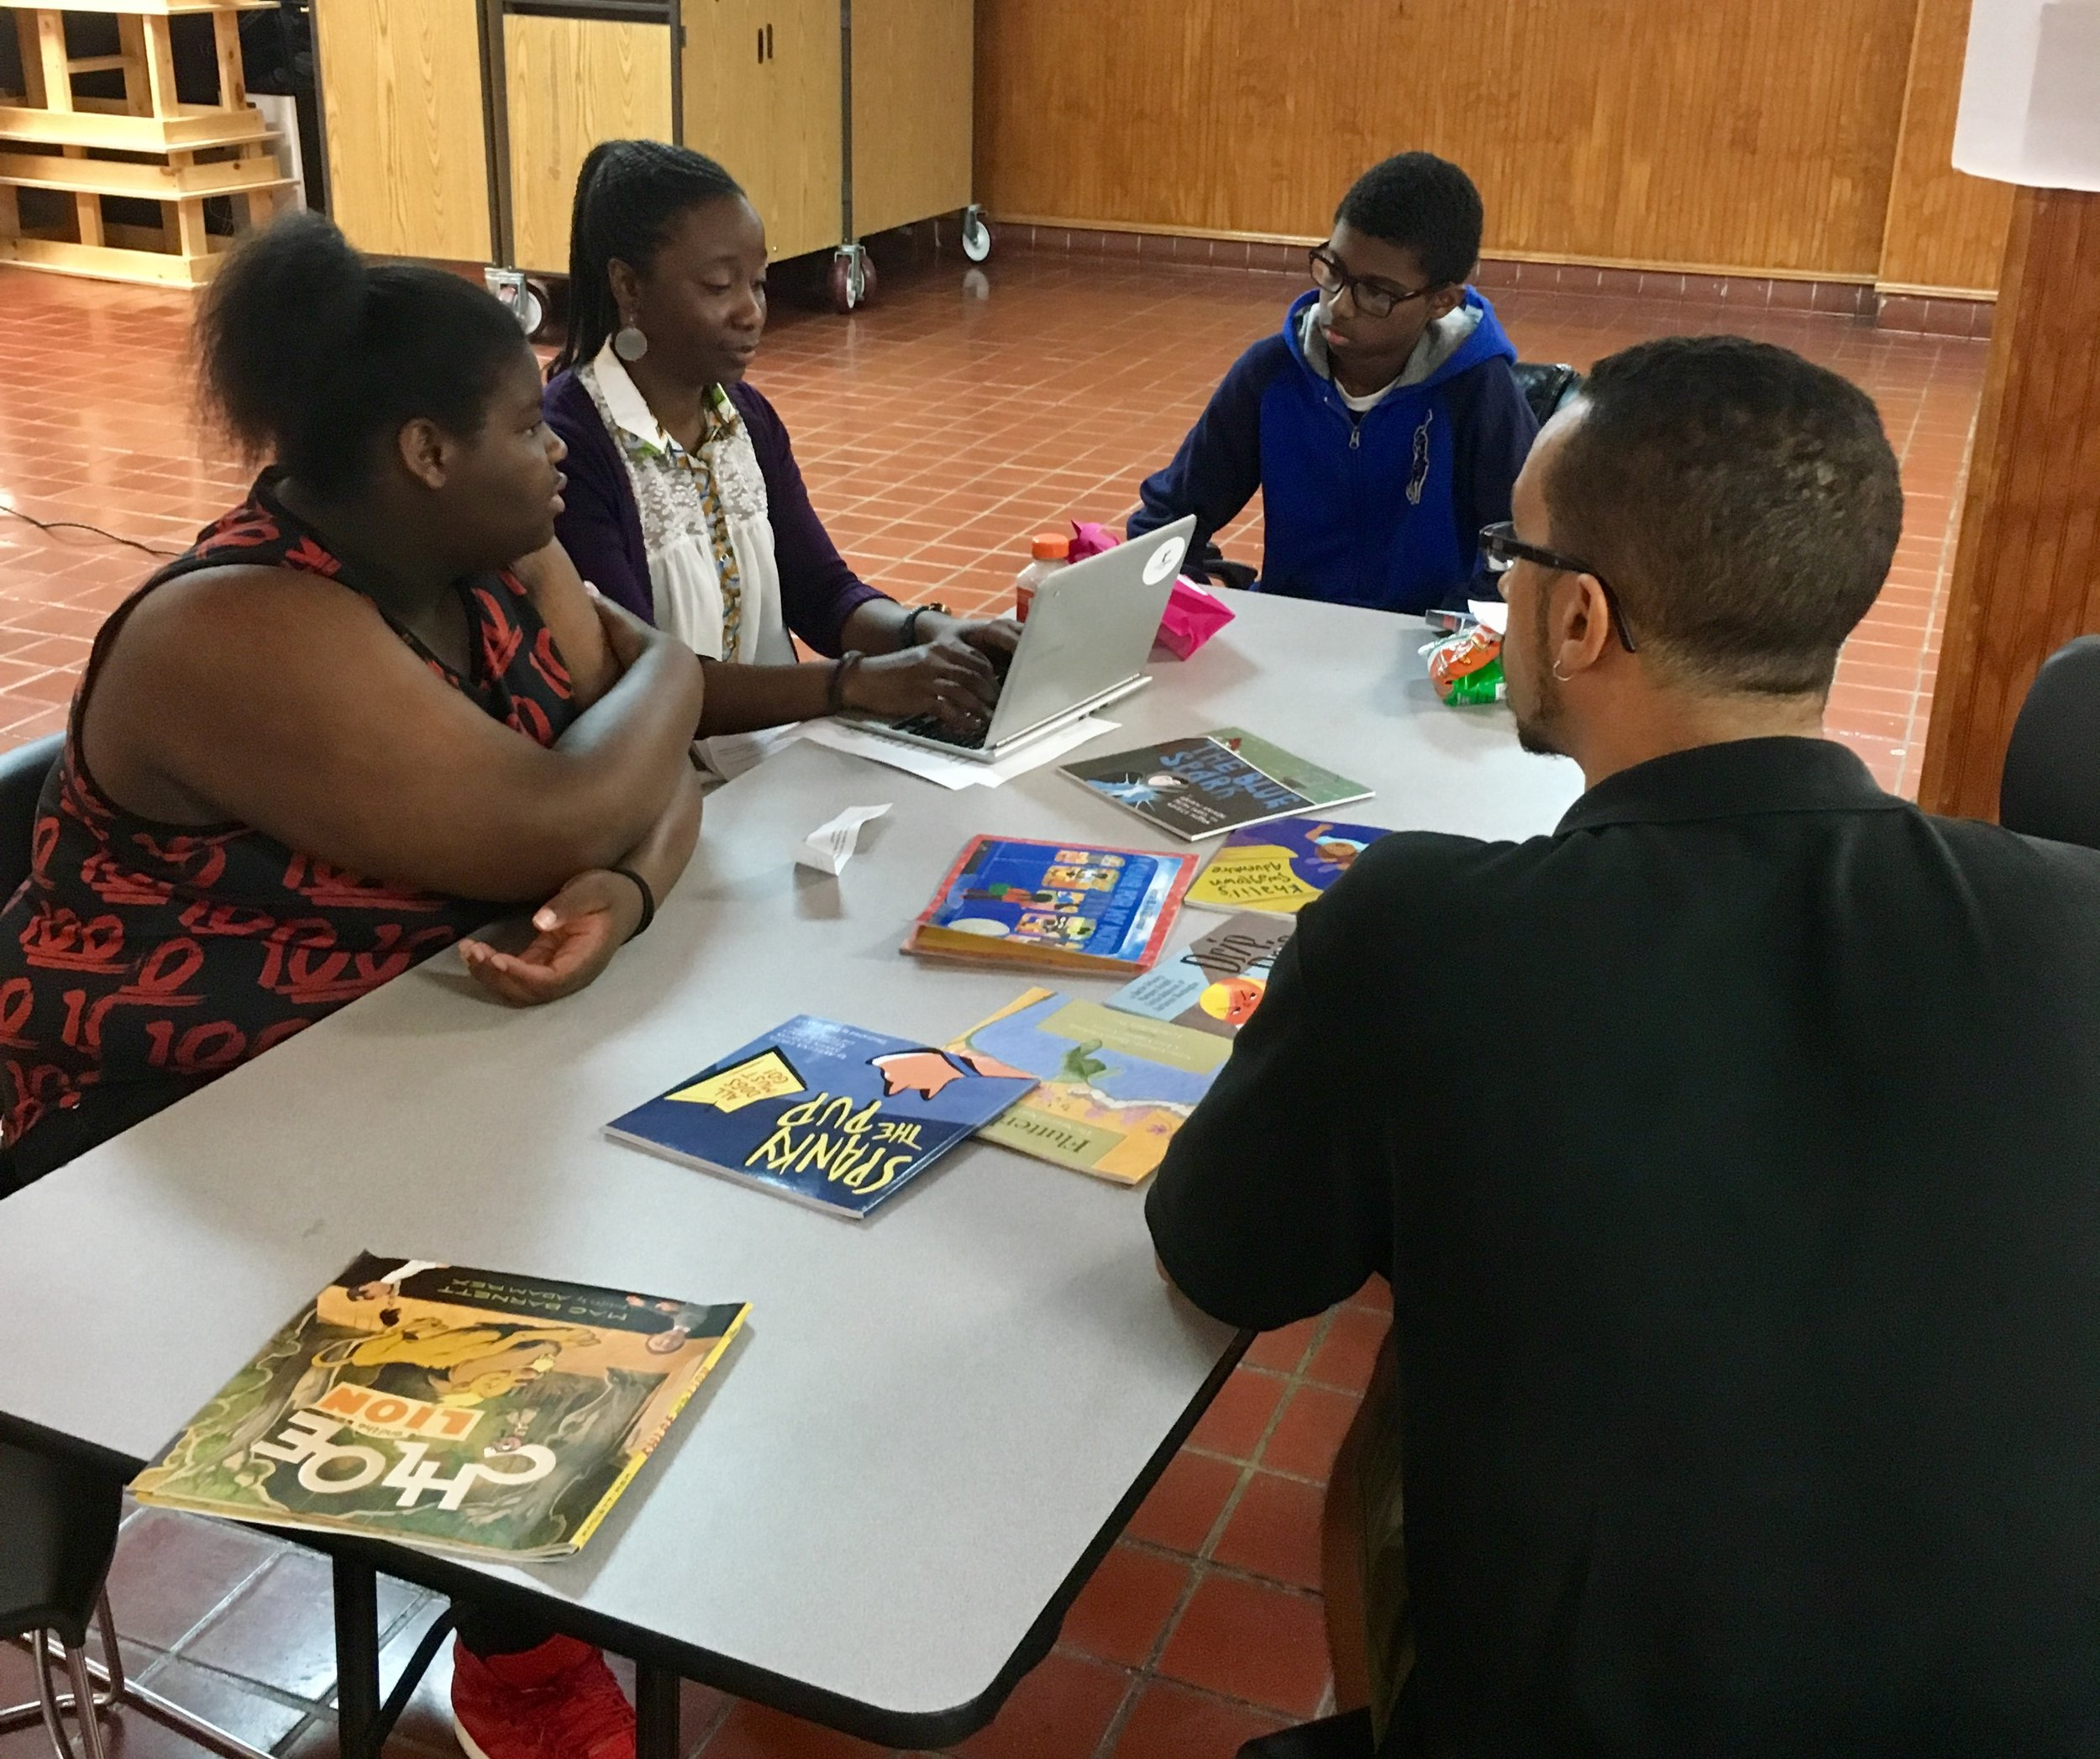 Reach teen authors in the brainstorming phase of their children's book.